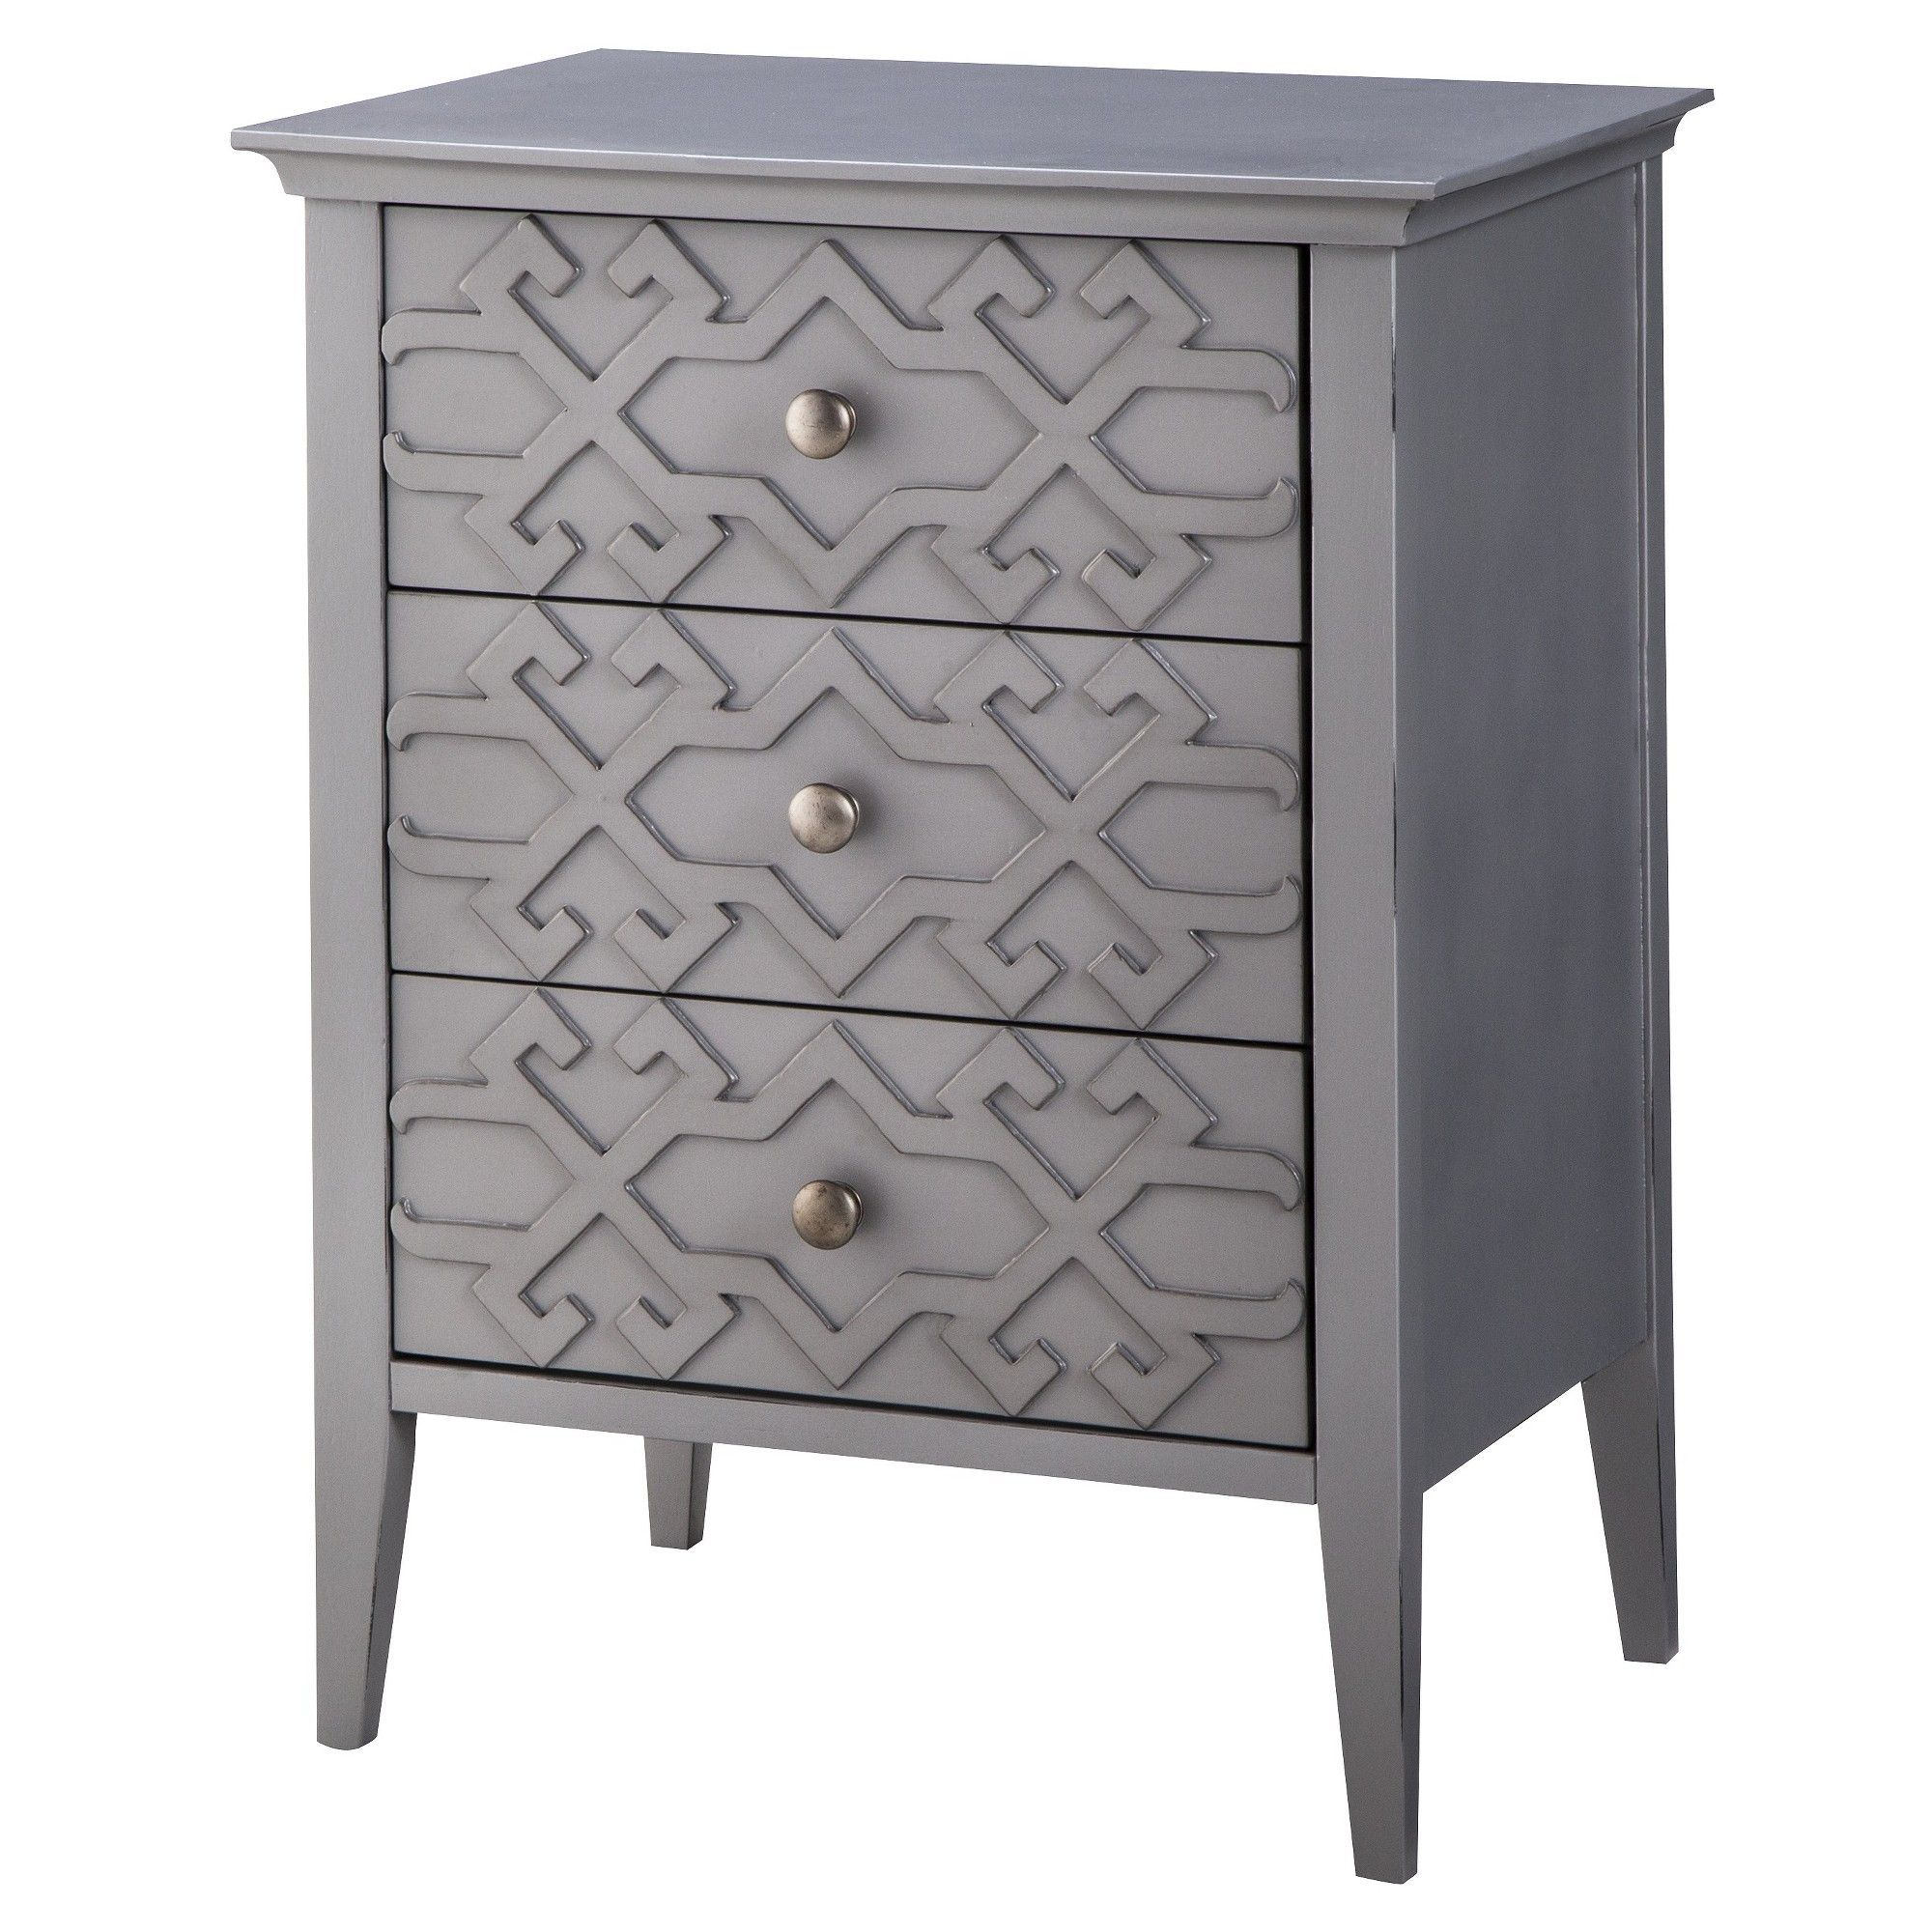 fretwork accent table threshold gray products white for nursery marble like coffee red and black armless chair patio box small runner rugs bar tray designer tables room essentials